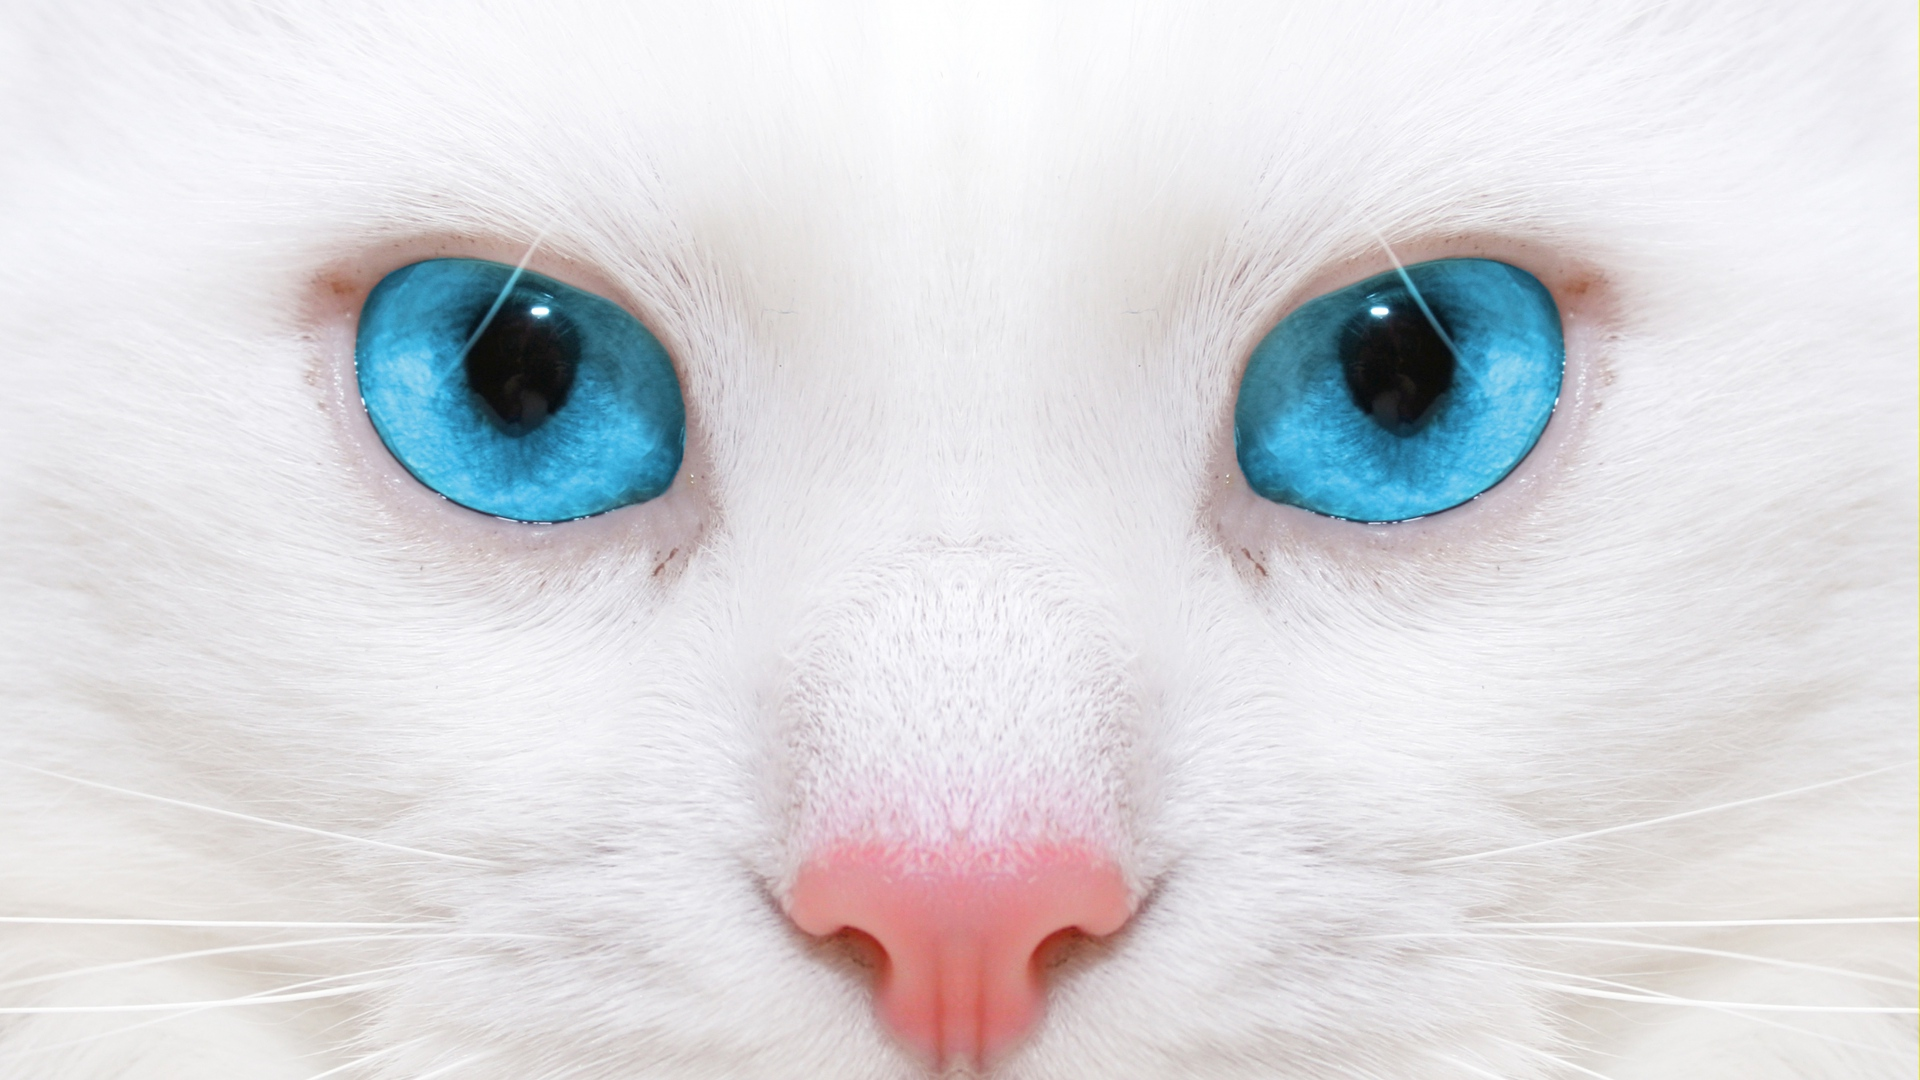 Get The Latest Beautiful White Cat Kitten News Pictures And Videos Learn All About From Wallpapers4uorg Your Wallpaper